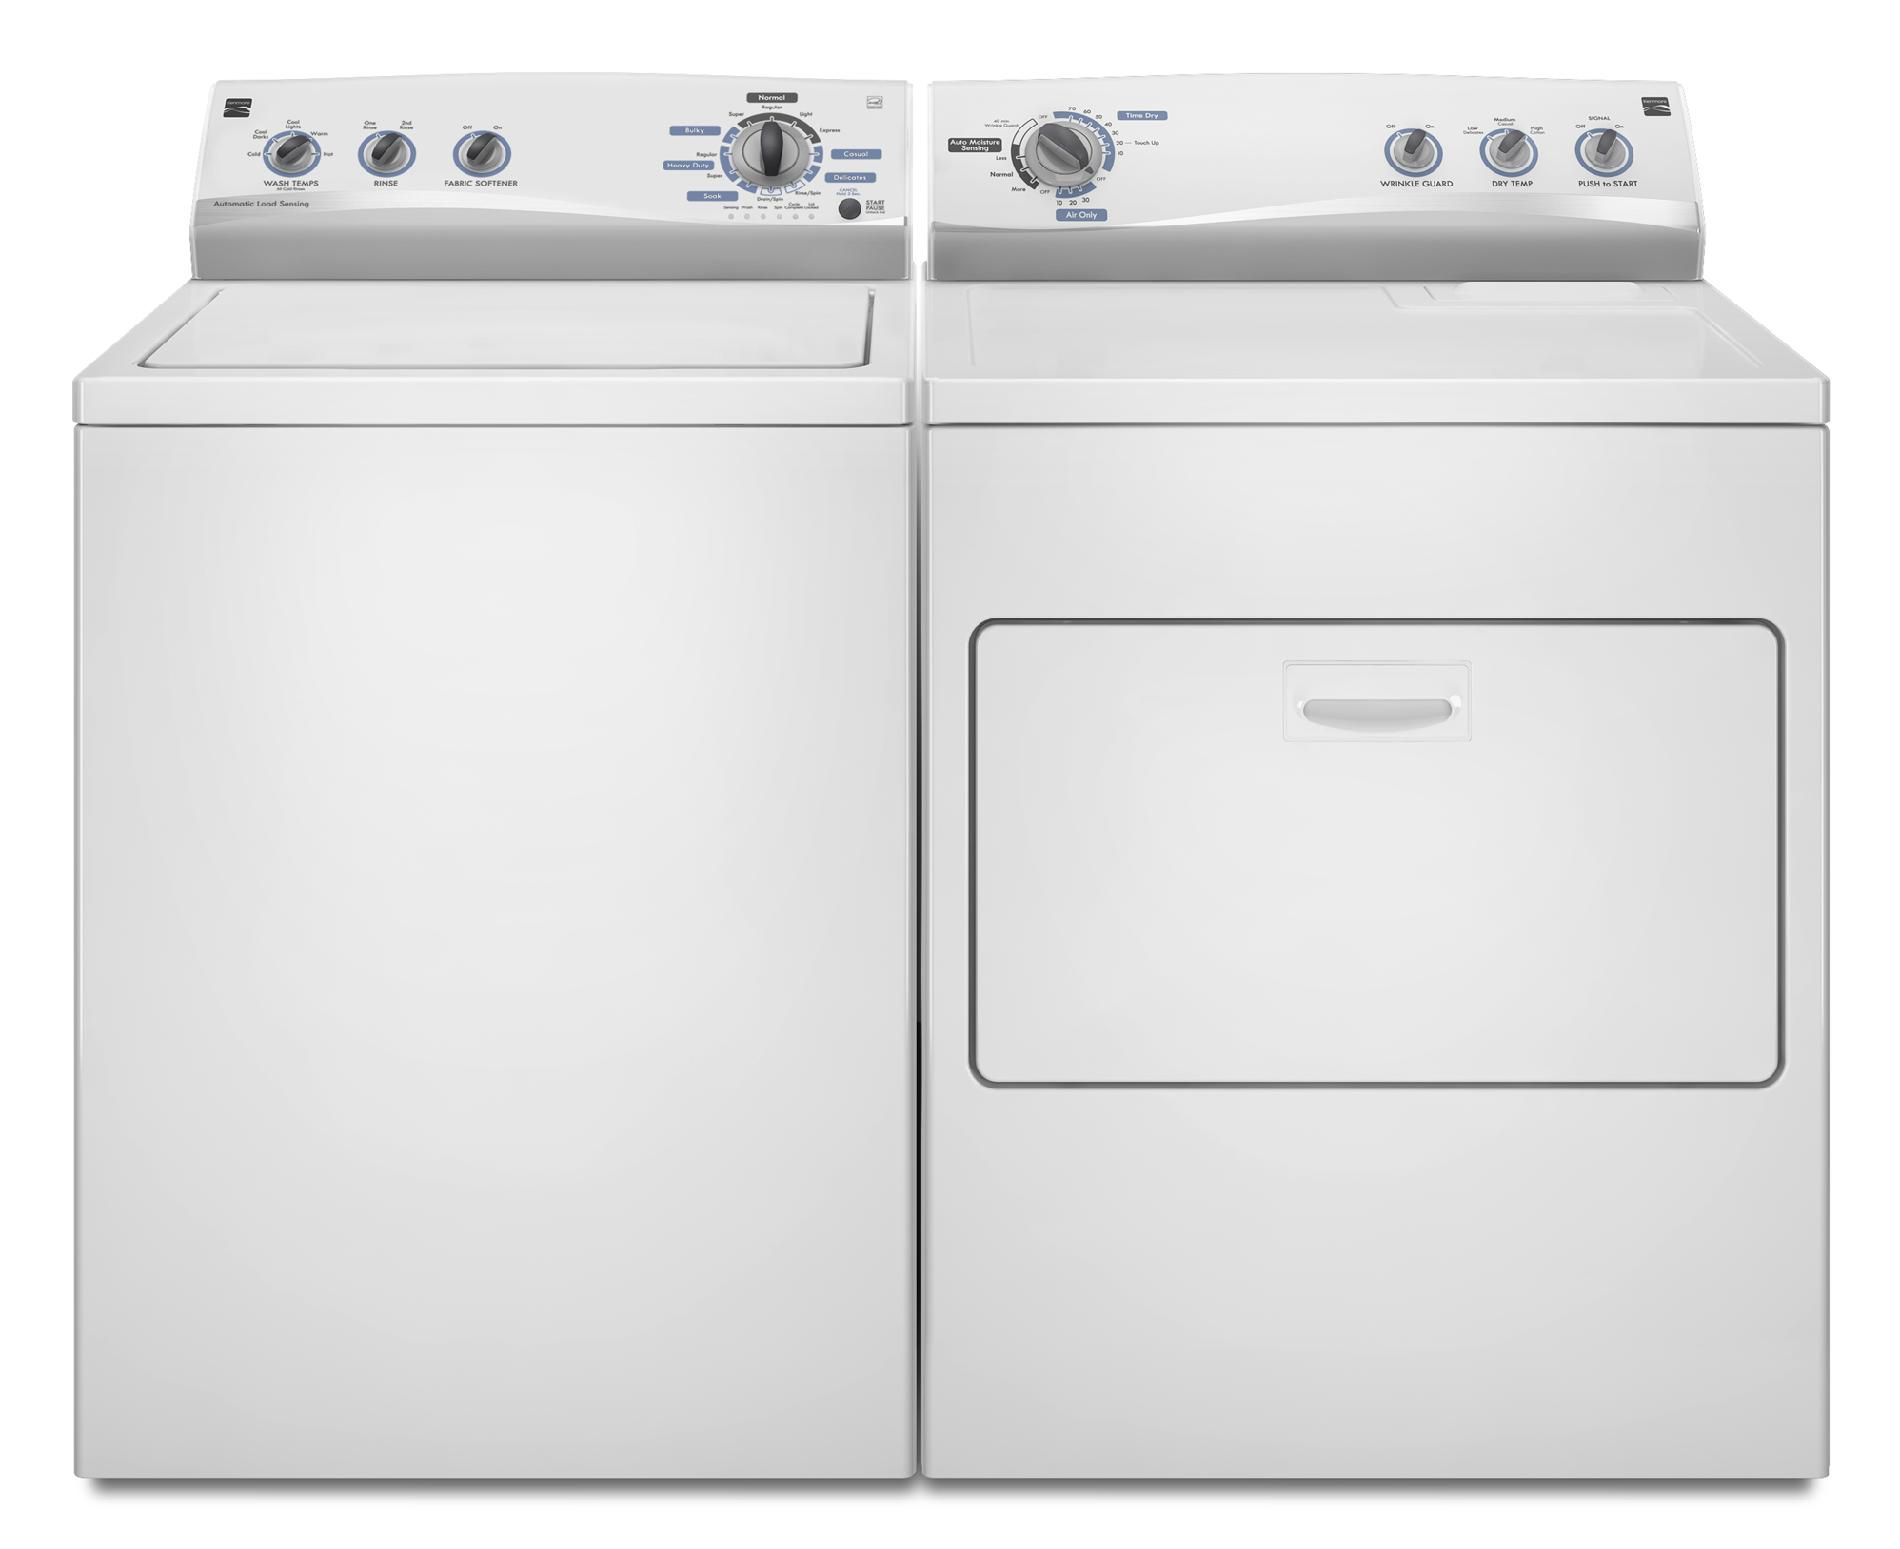 Kenmore 3.4 cu. ft. Top-Load Washing Machine w/Triple-Action® Agitator - White